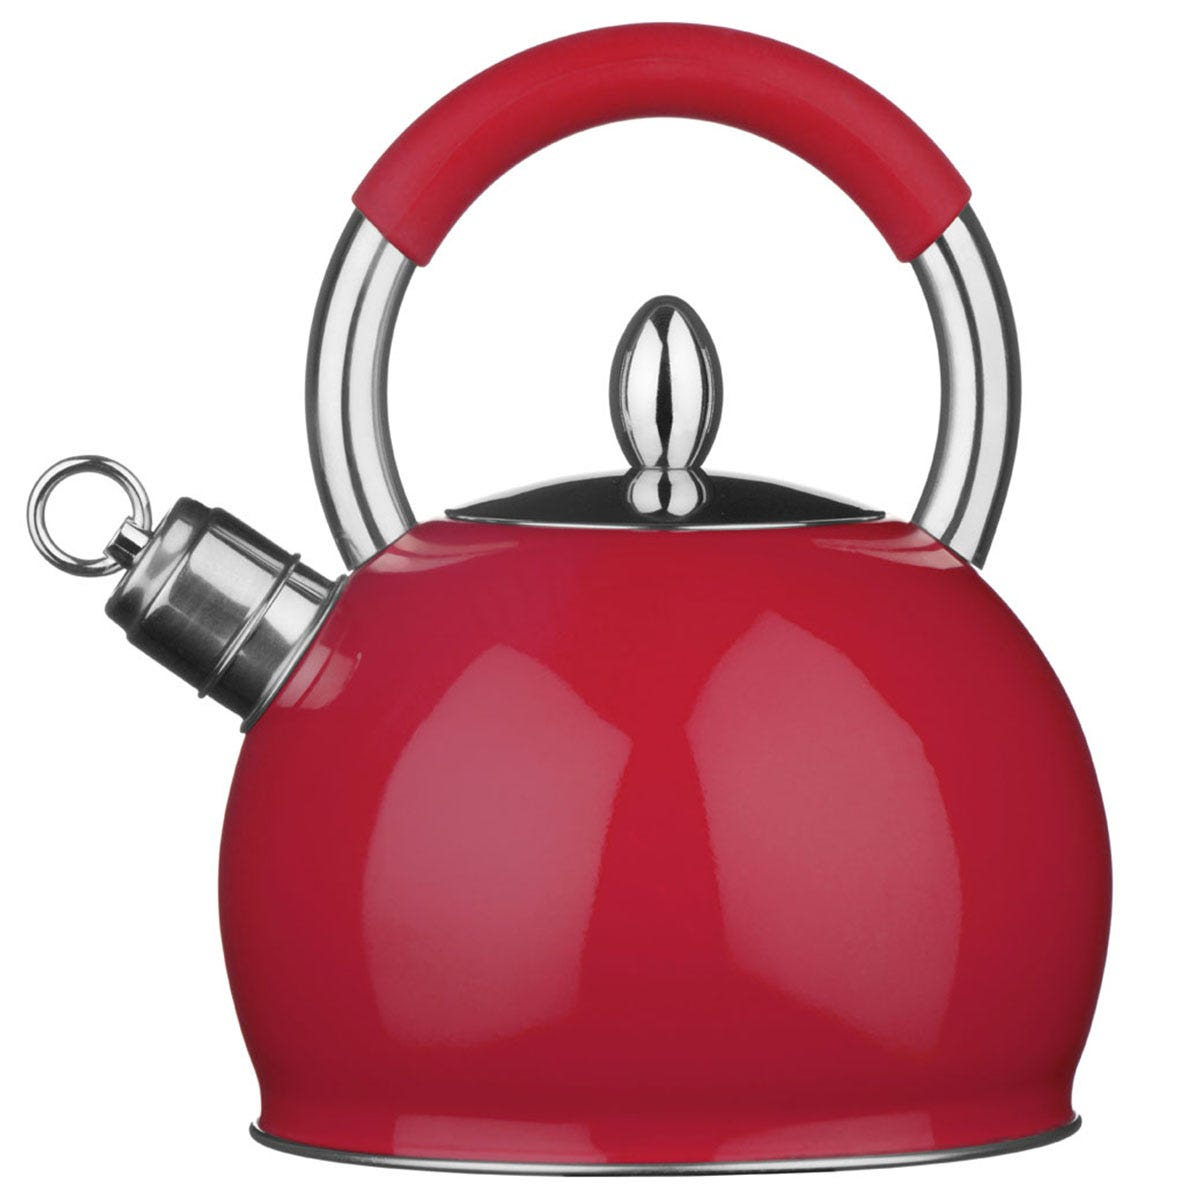 Premier Housewares 2.4L Stainless Steel Whistling Kettle - Red